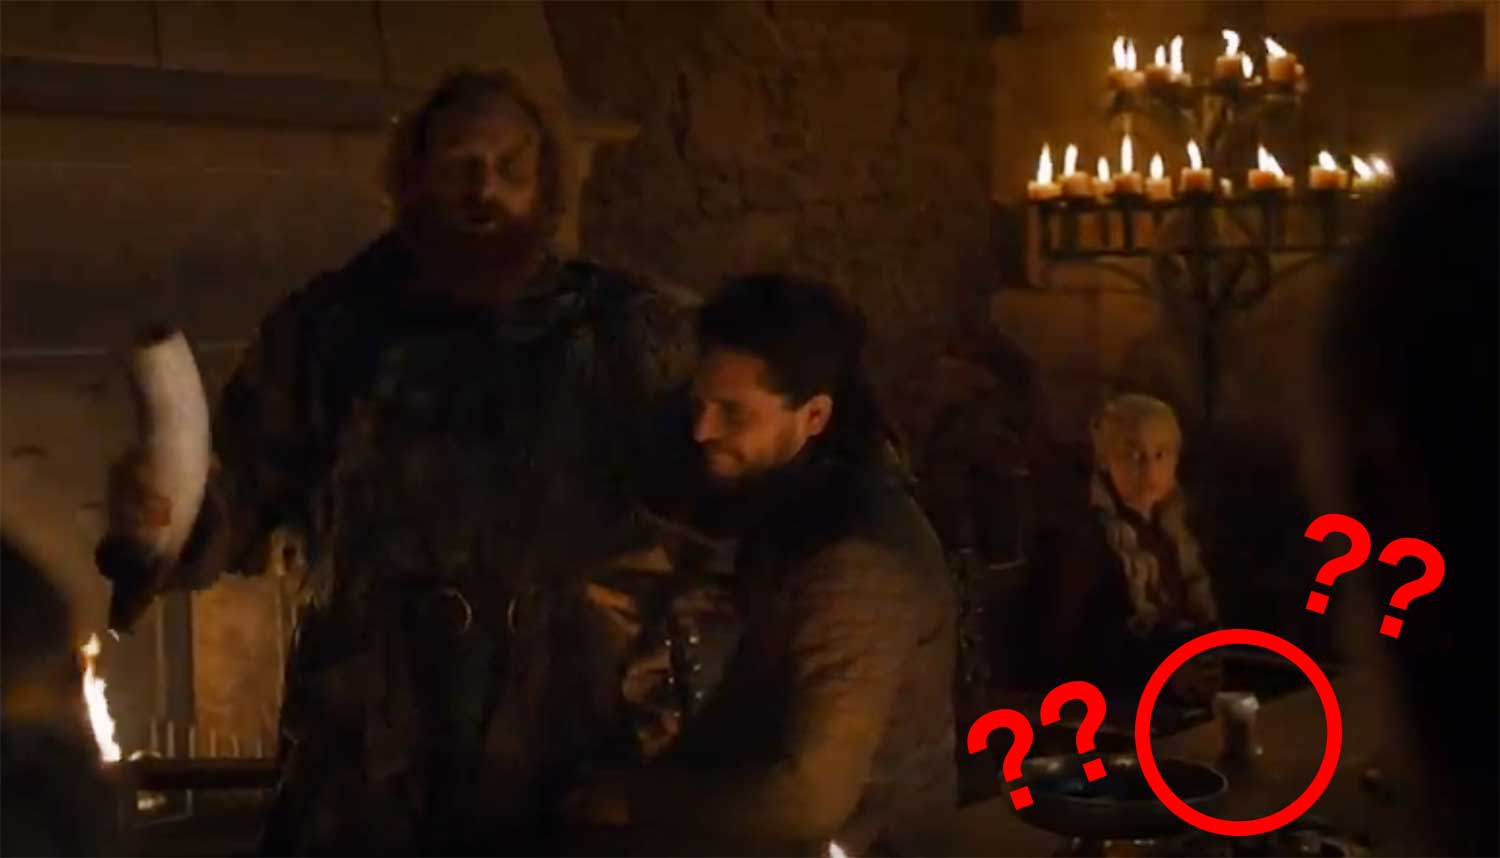 Starbucks-beker in Game of Thrones